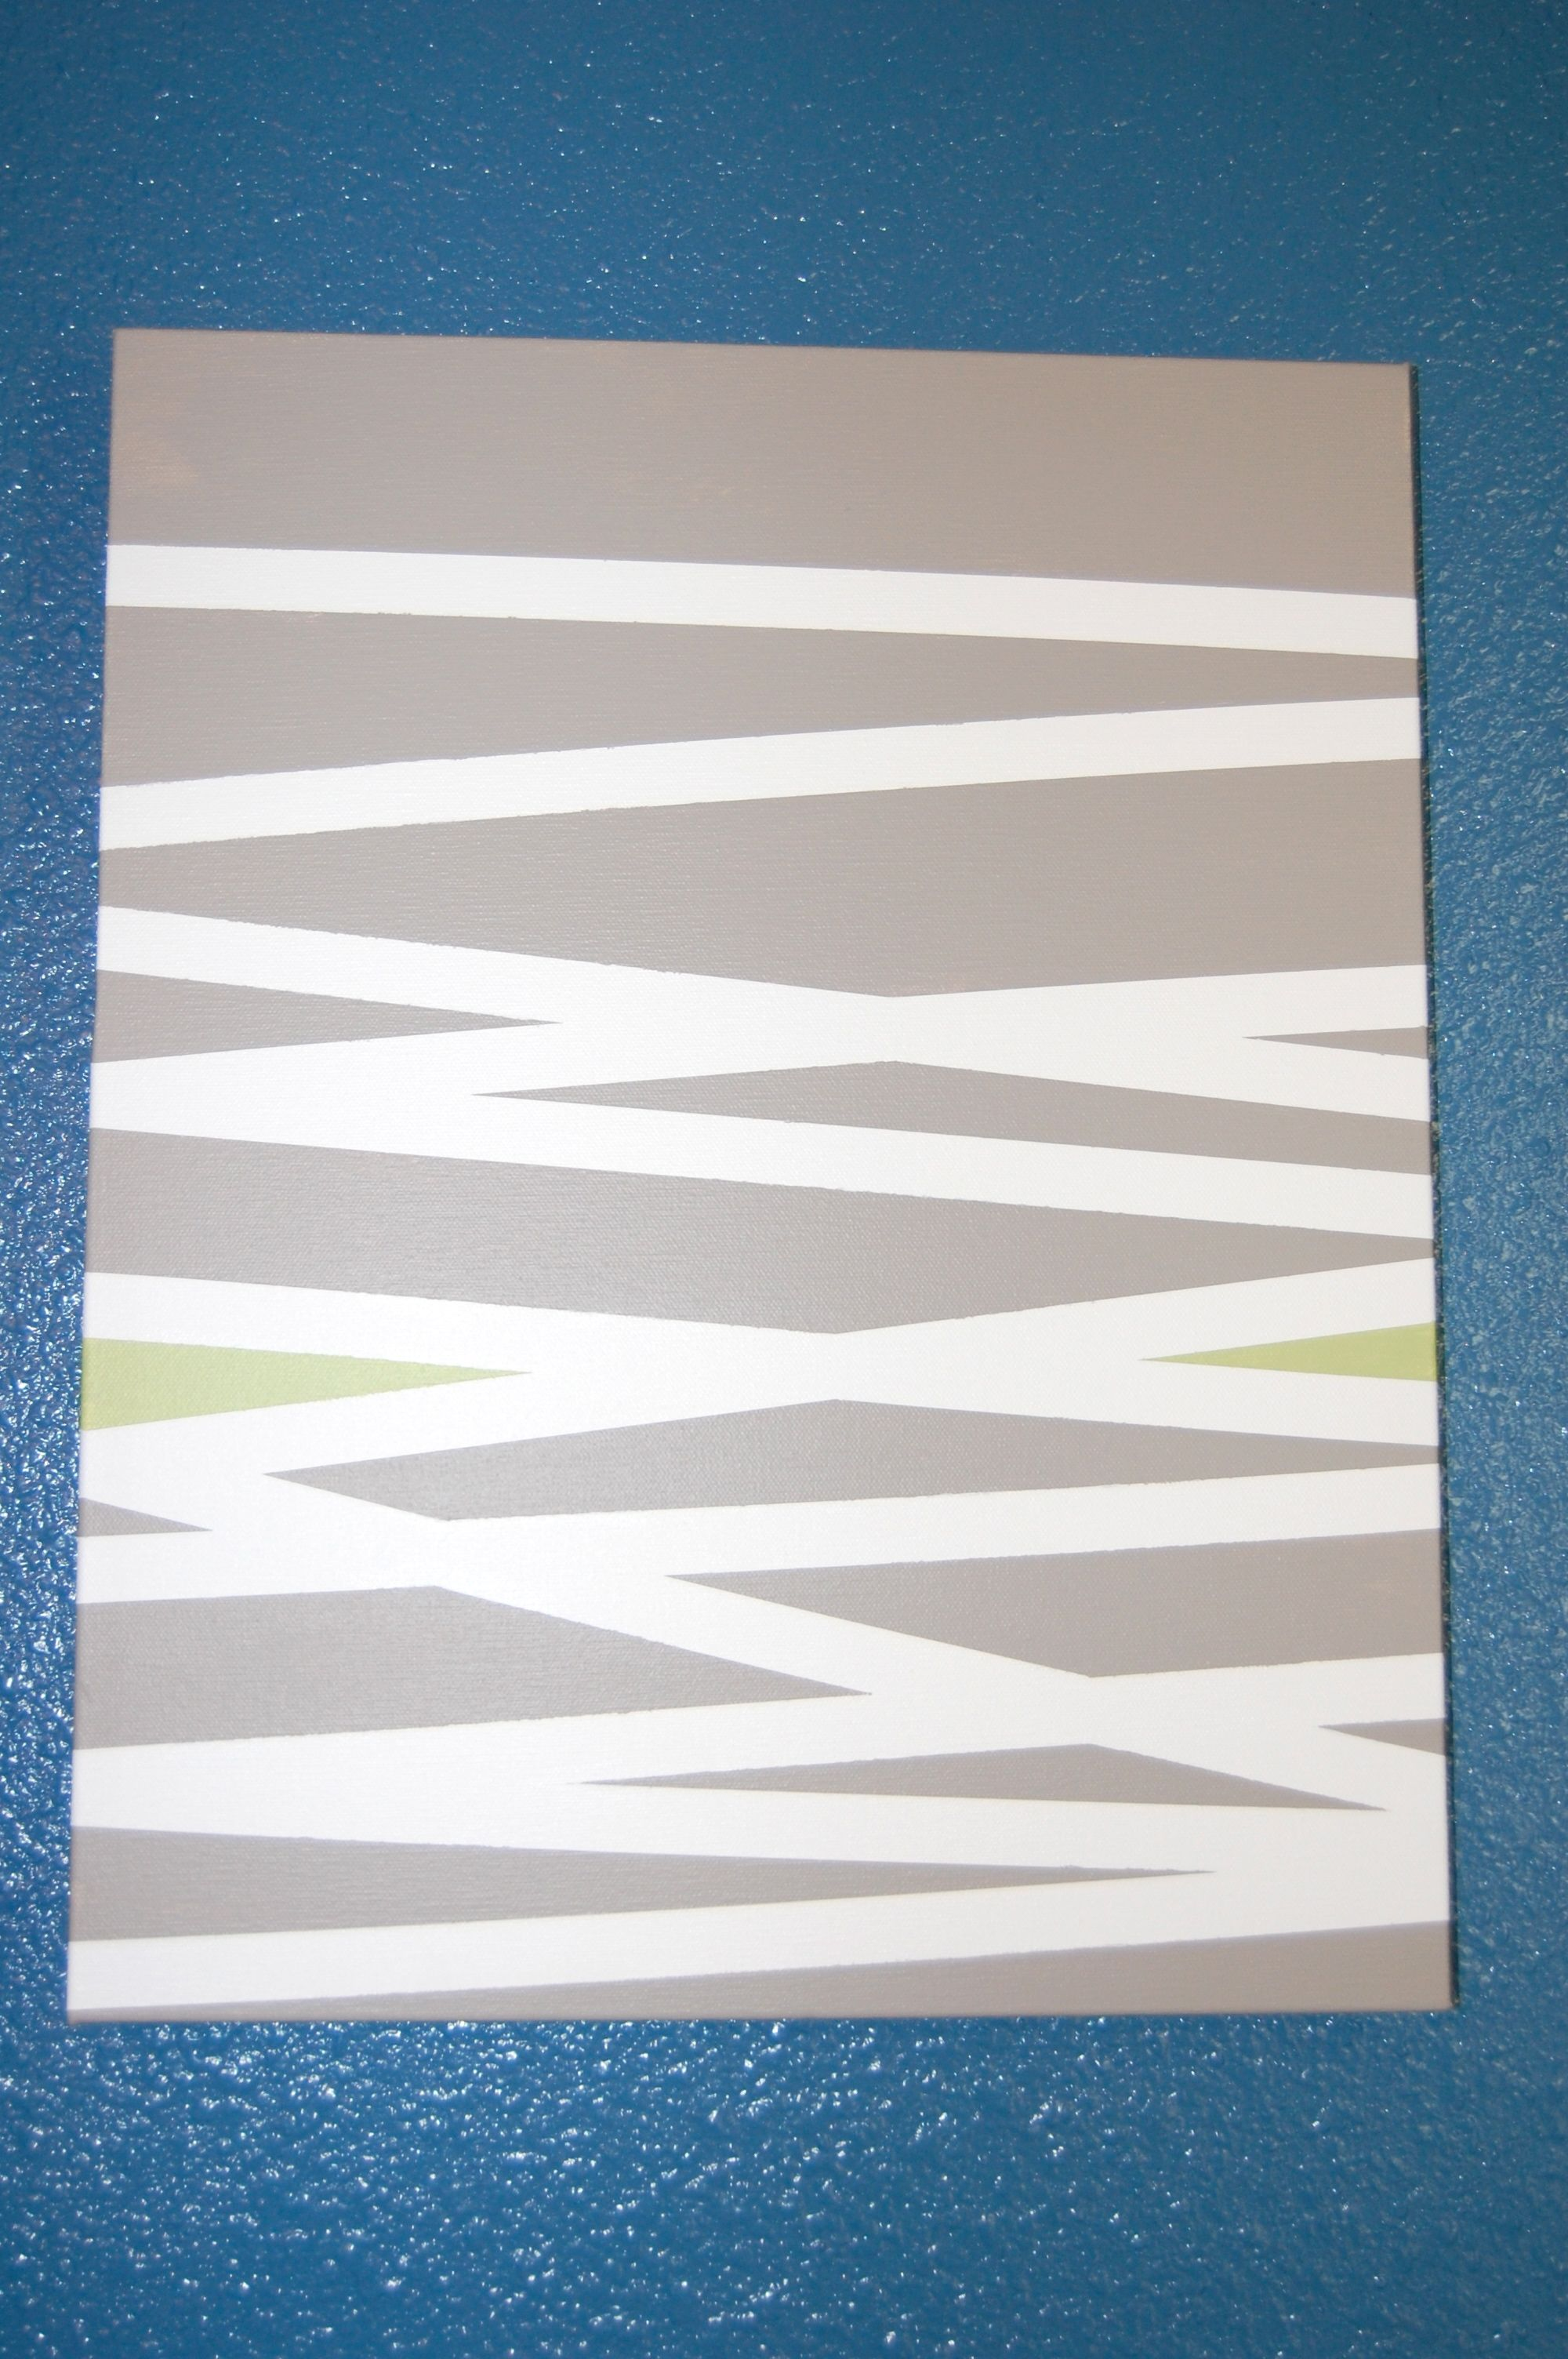 Striped Canvas Art With Painters Tape Painters Tape Art Diy Canvas Art Canvas Art